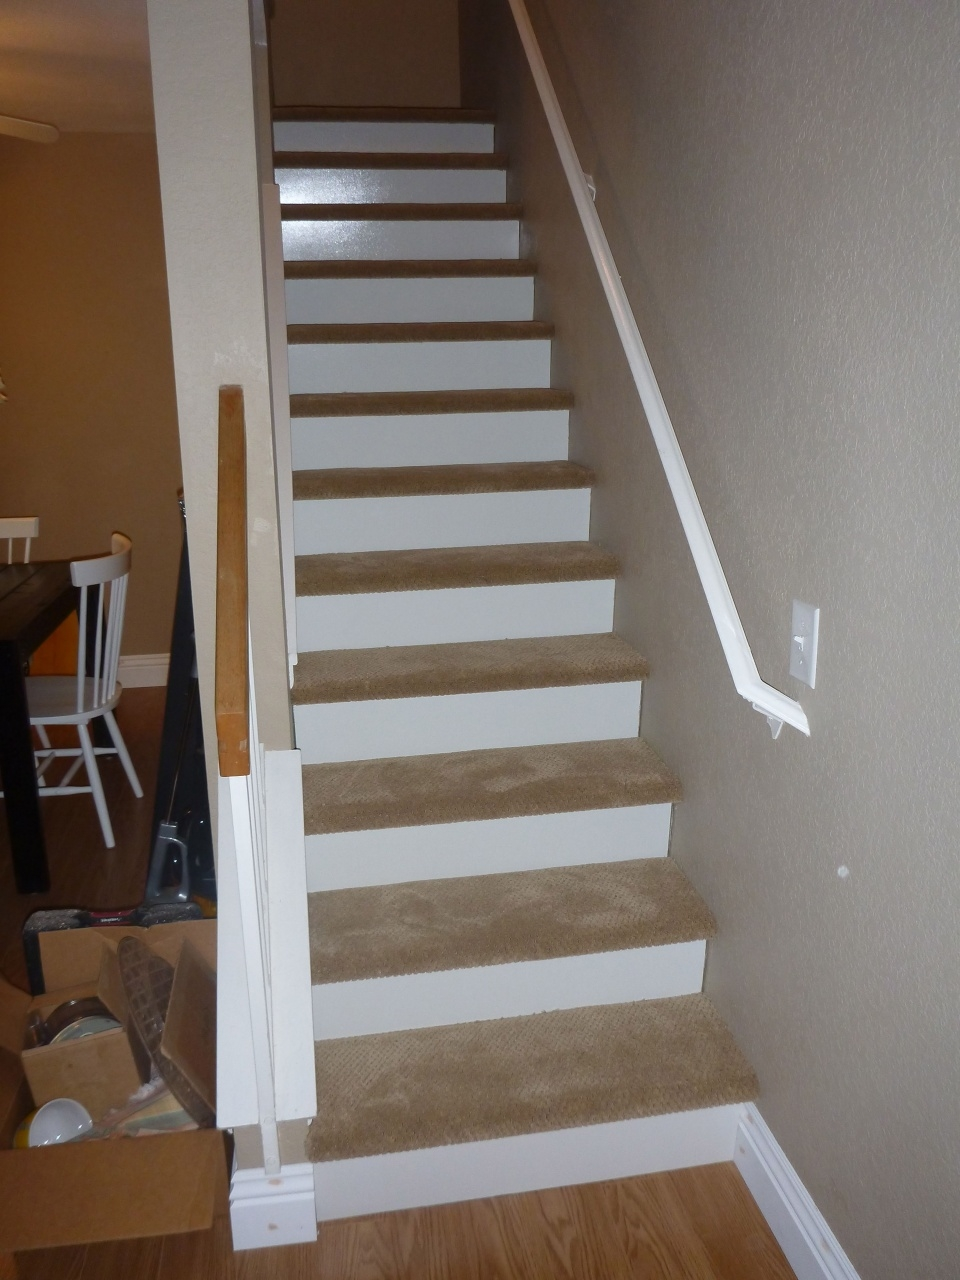 Vinyl Stairs Treads And Risers Our New Stairs 1 8 Inch Wood White | Oak Stairs With White Risers | Natural | Red Oak | Character | Hardwood | Dark Walnut Staircase